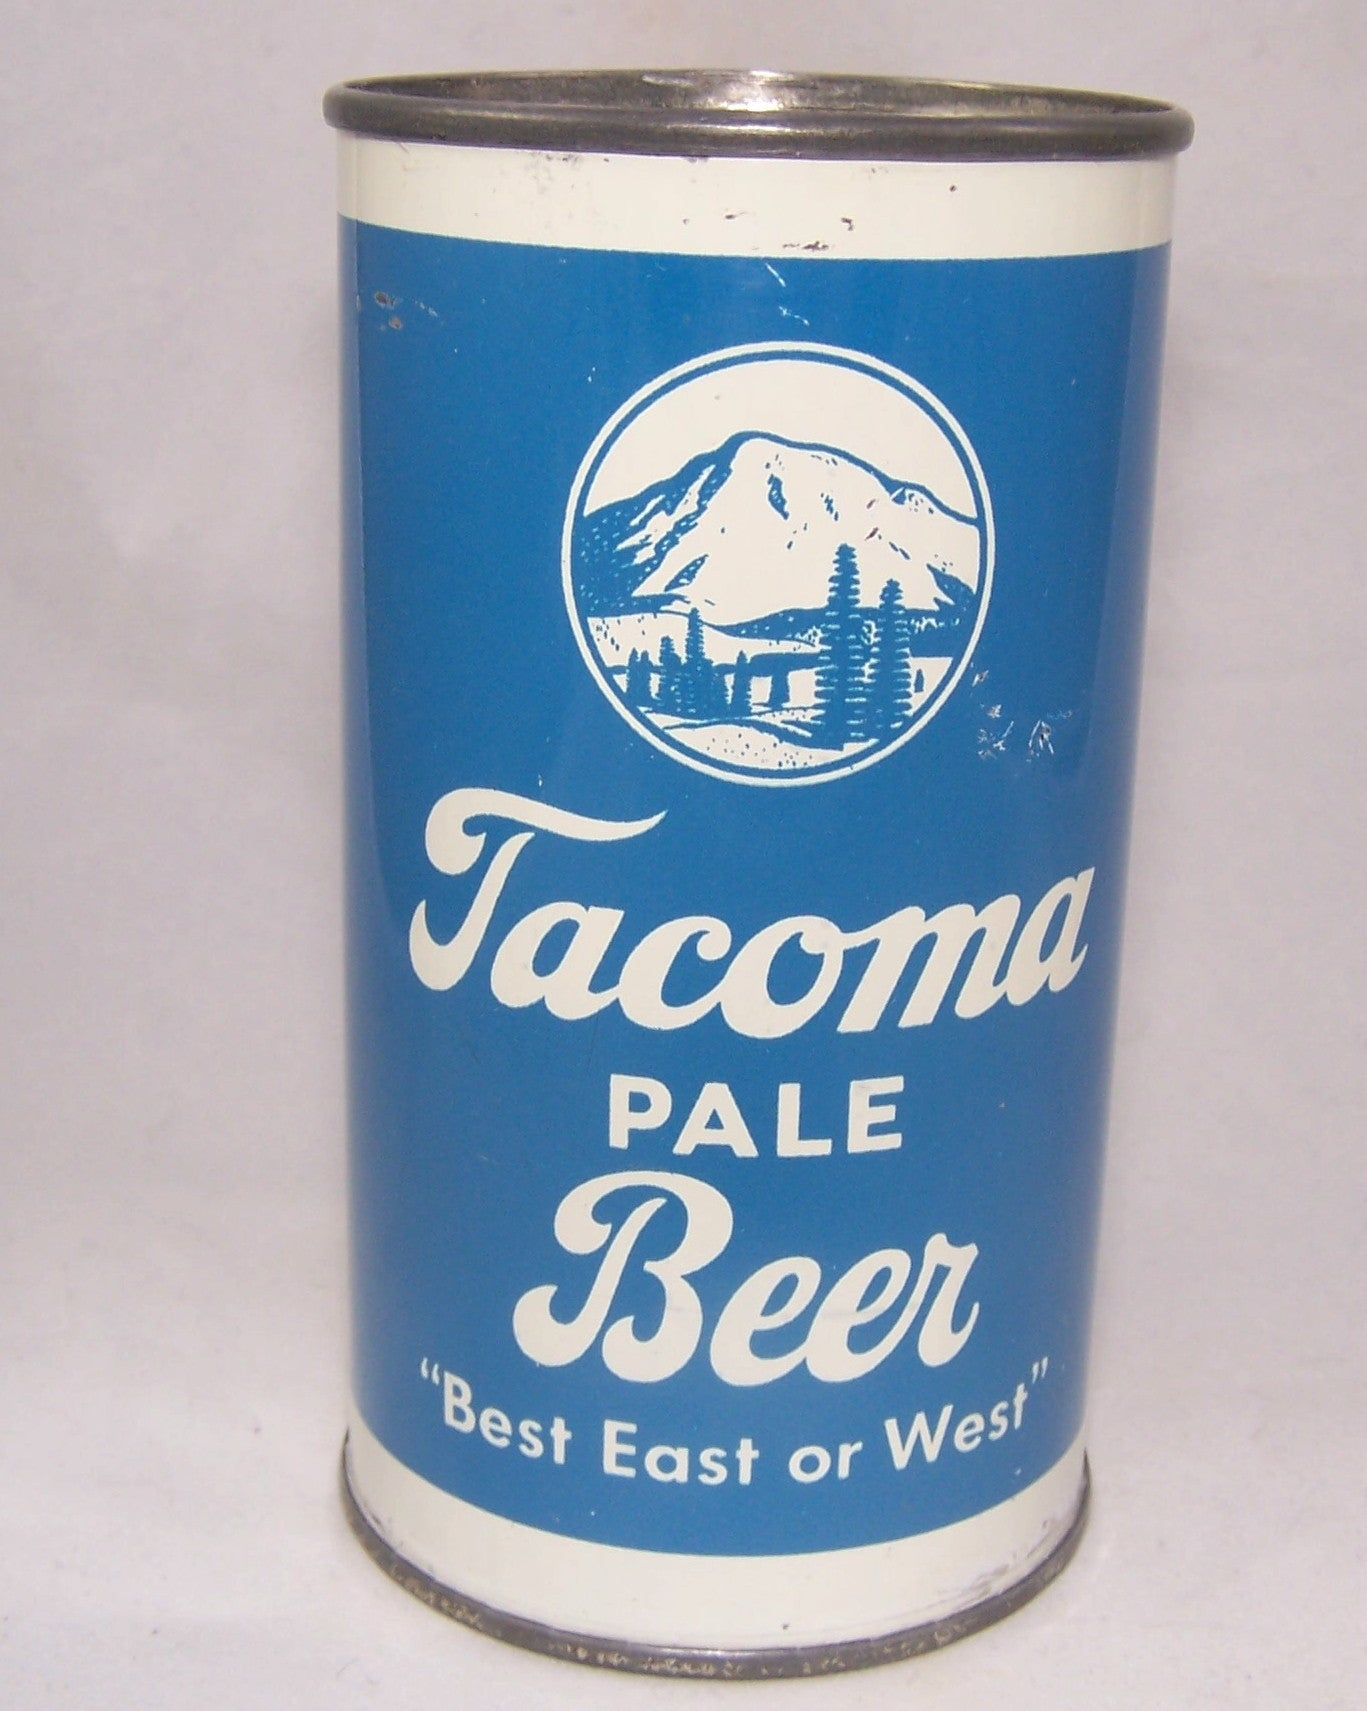 Tacoma Pale Beer, USBC 138-07, Grade 1/1+ Sold on 05/15/18